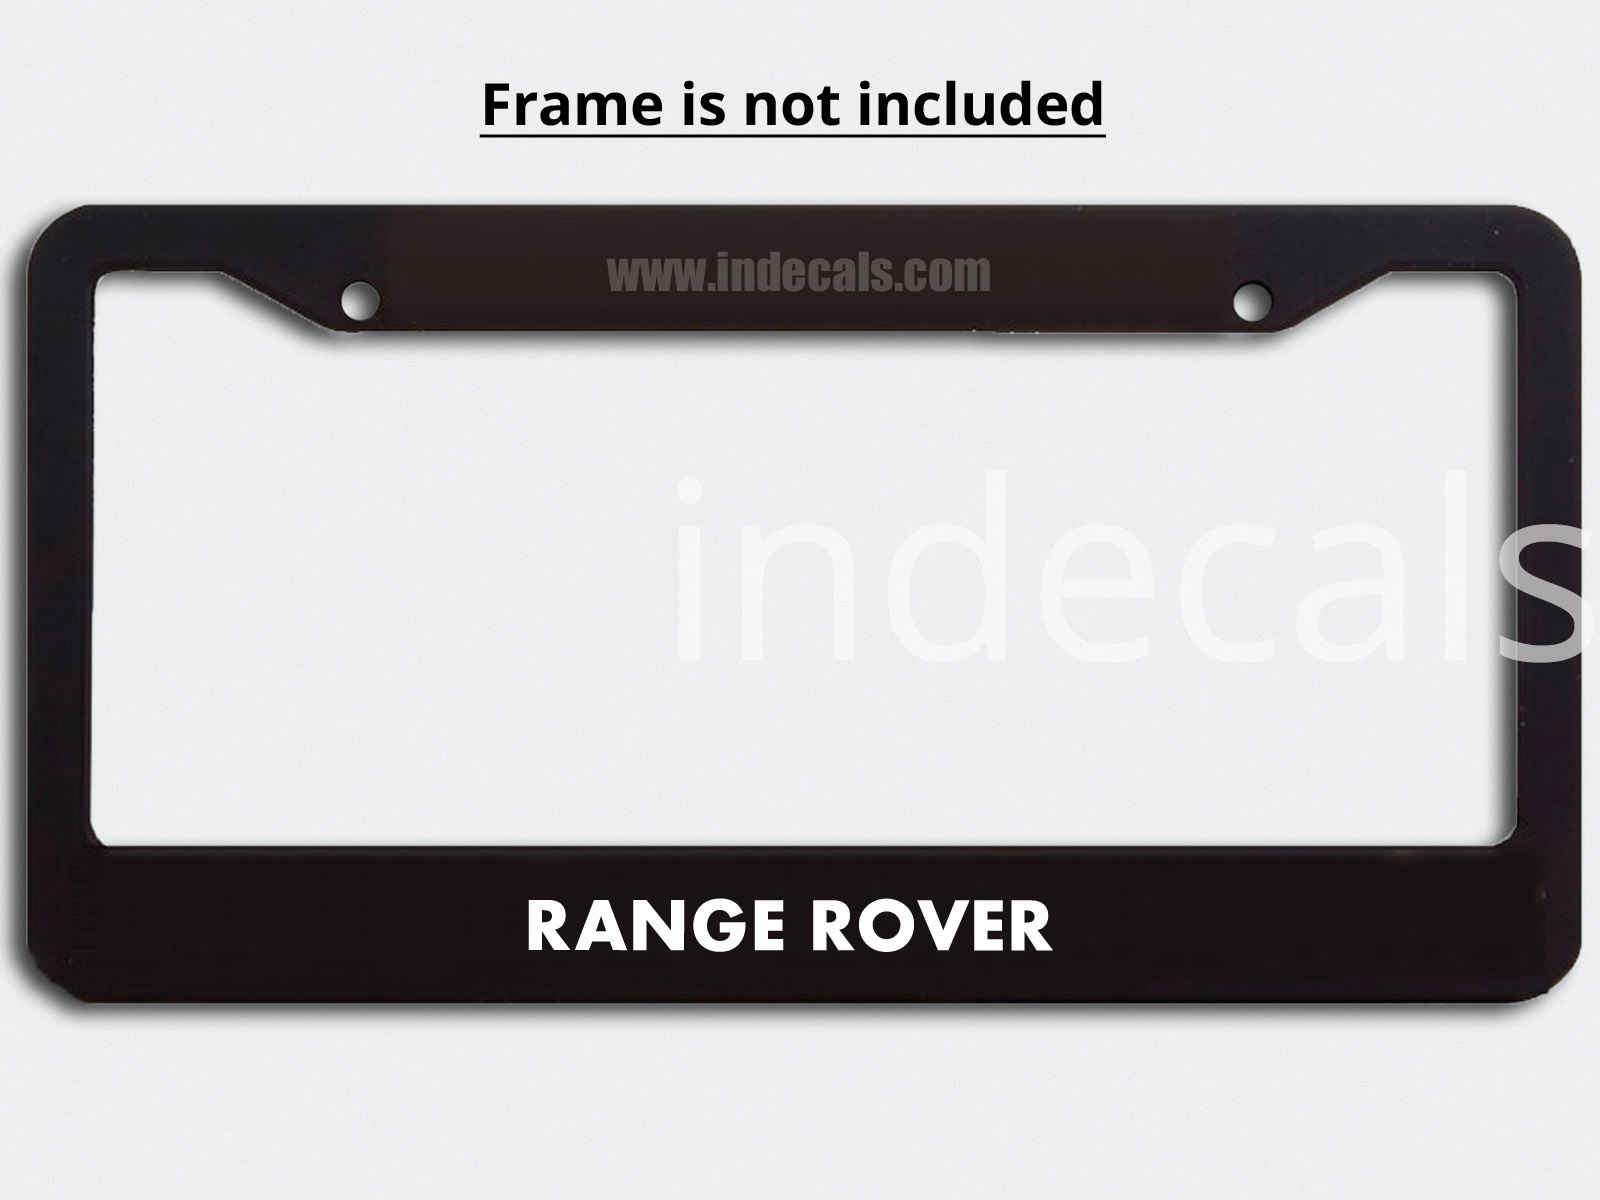 3 x Range Rover Stickers for Plate Frame - White